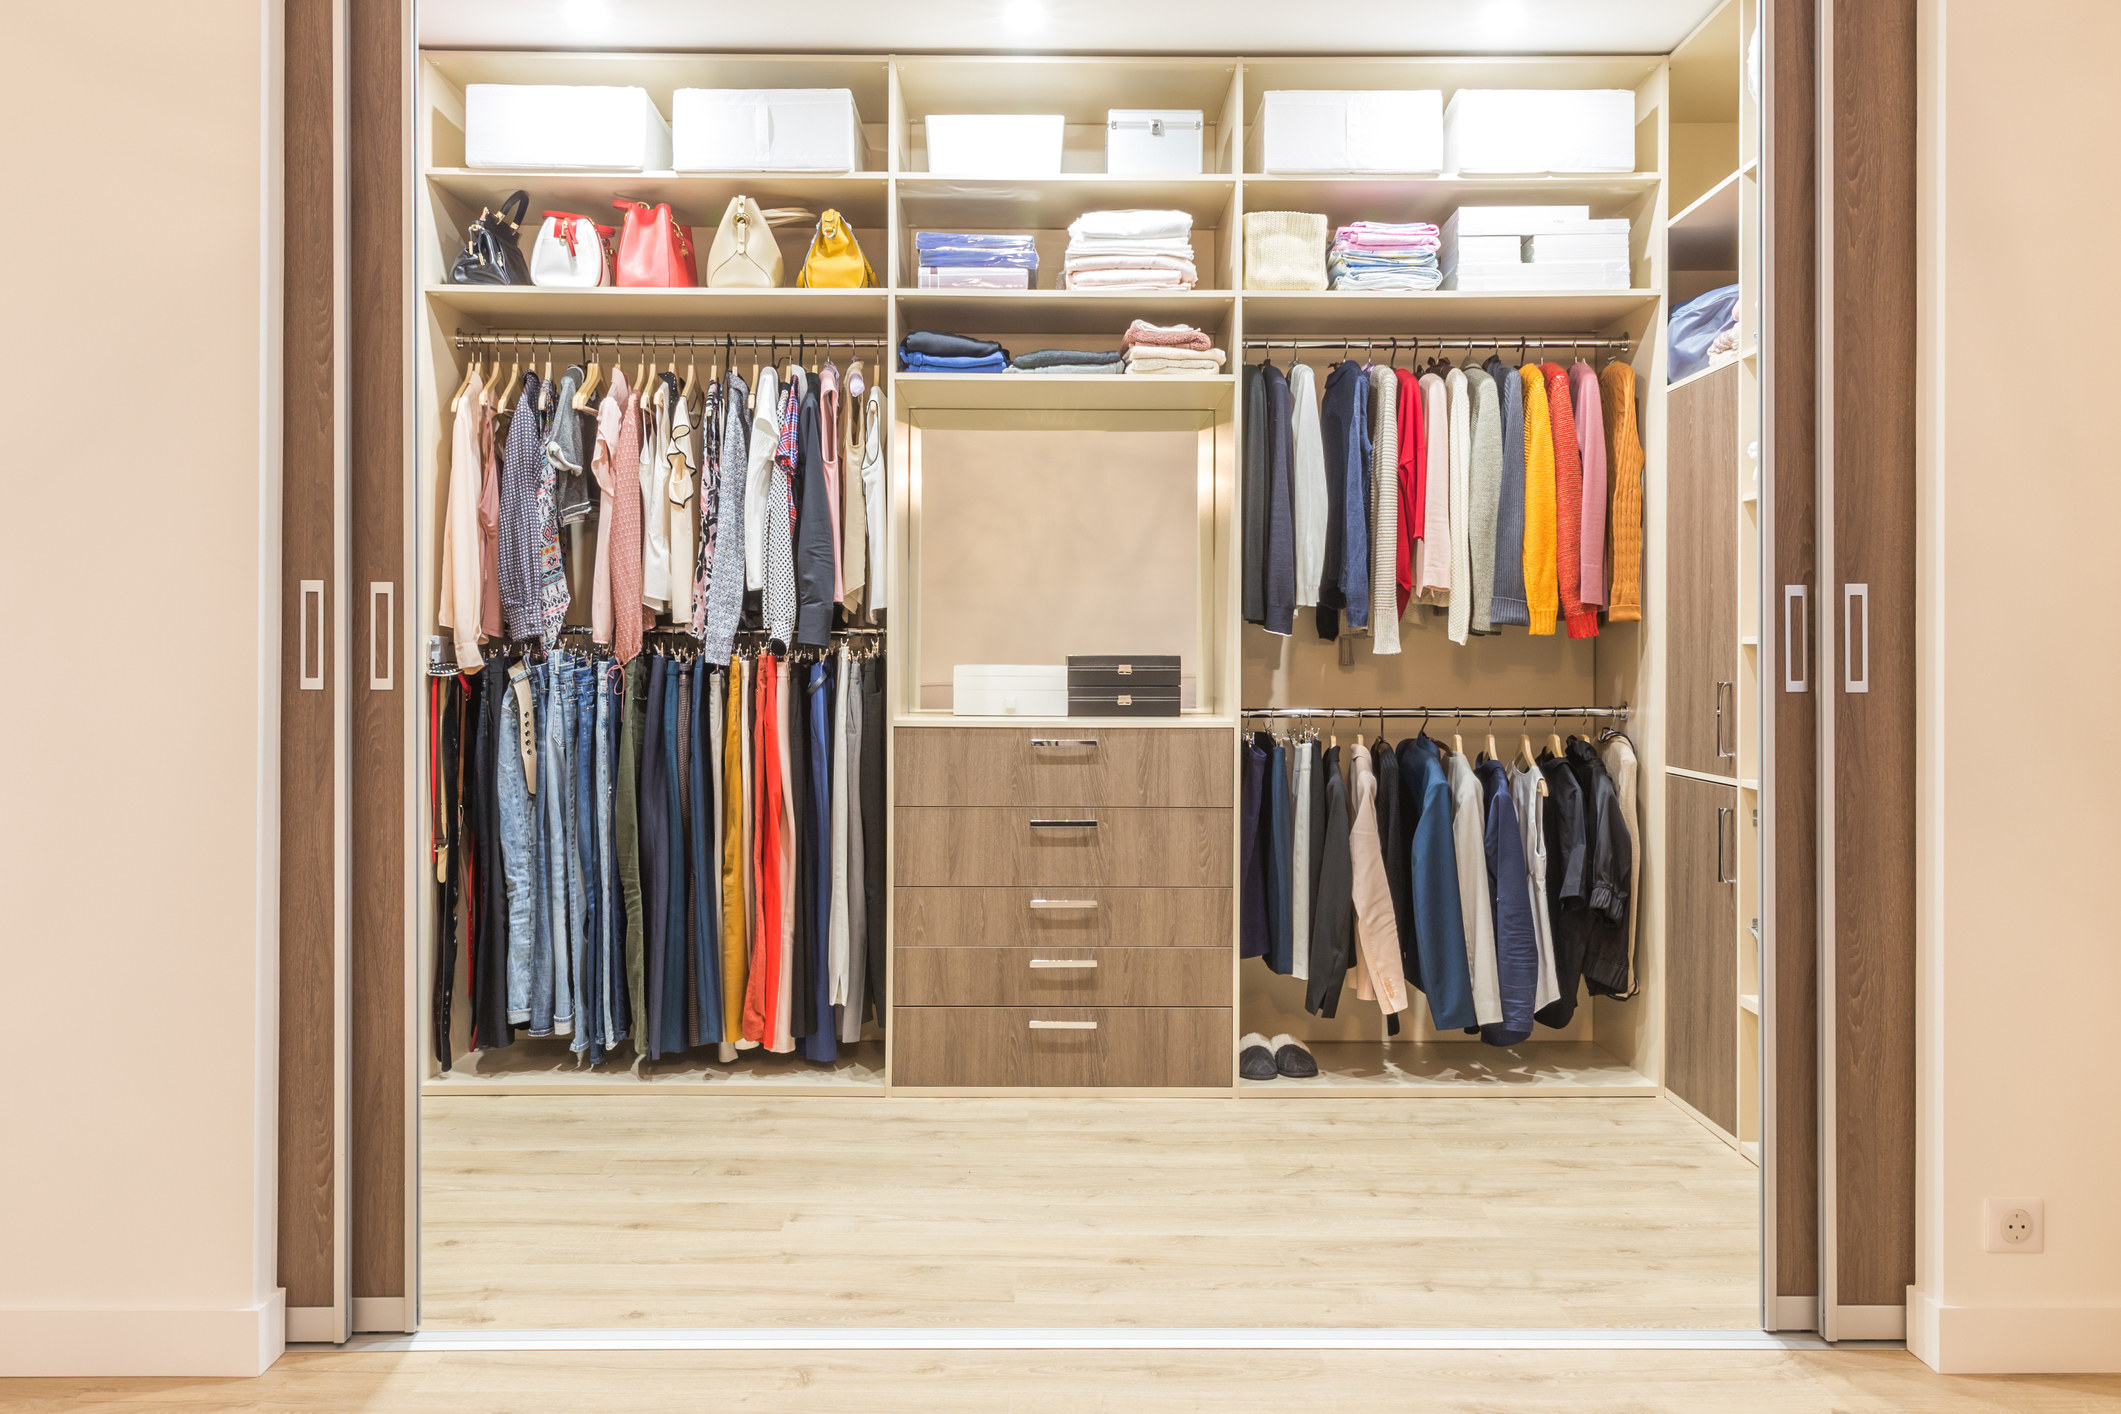 photo of a large walk in closet in an apartment with the doors to the side, the walk in closet is white, brown and beige with clothes hanging neatly, above the hangers are bags, folded clothes and white storage boxes